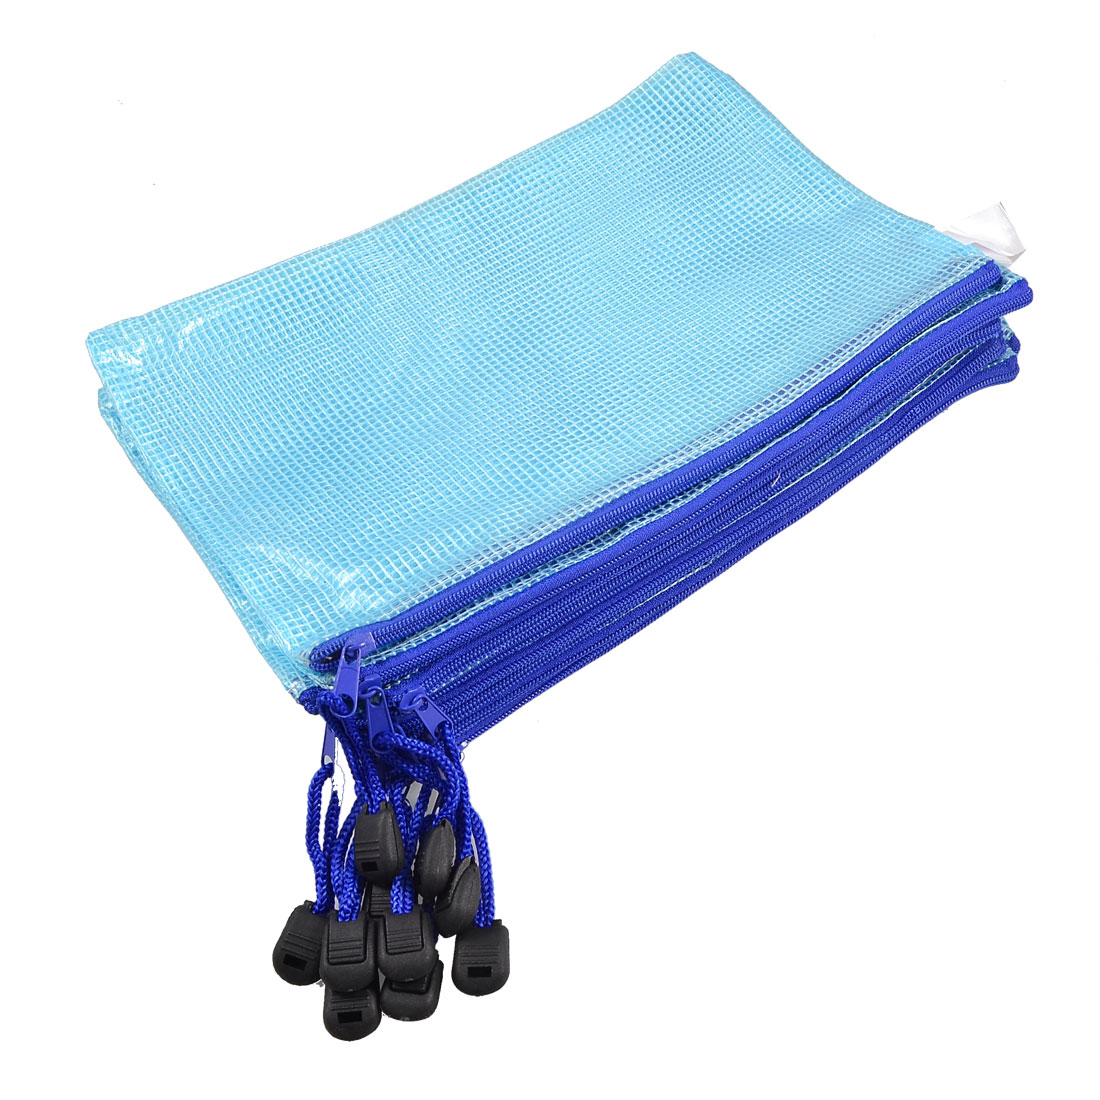 10 x Blue Plastic Net Design A5 Size Paper File Holder Zipper Bag w Strap